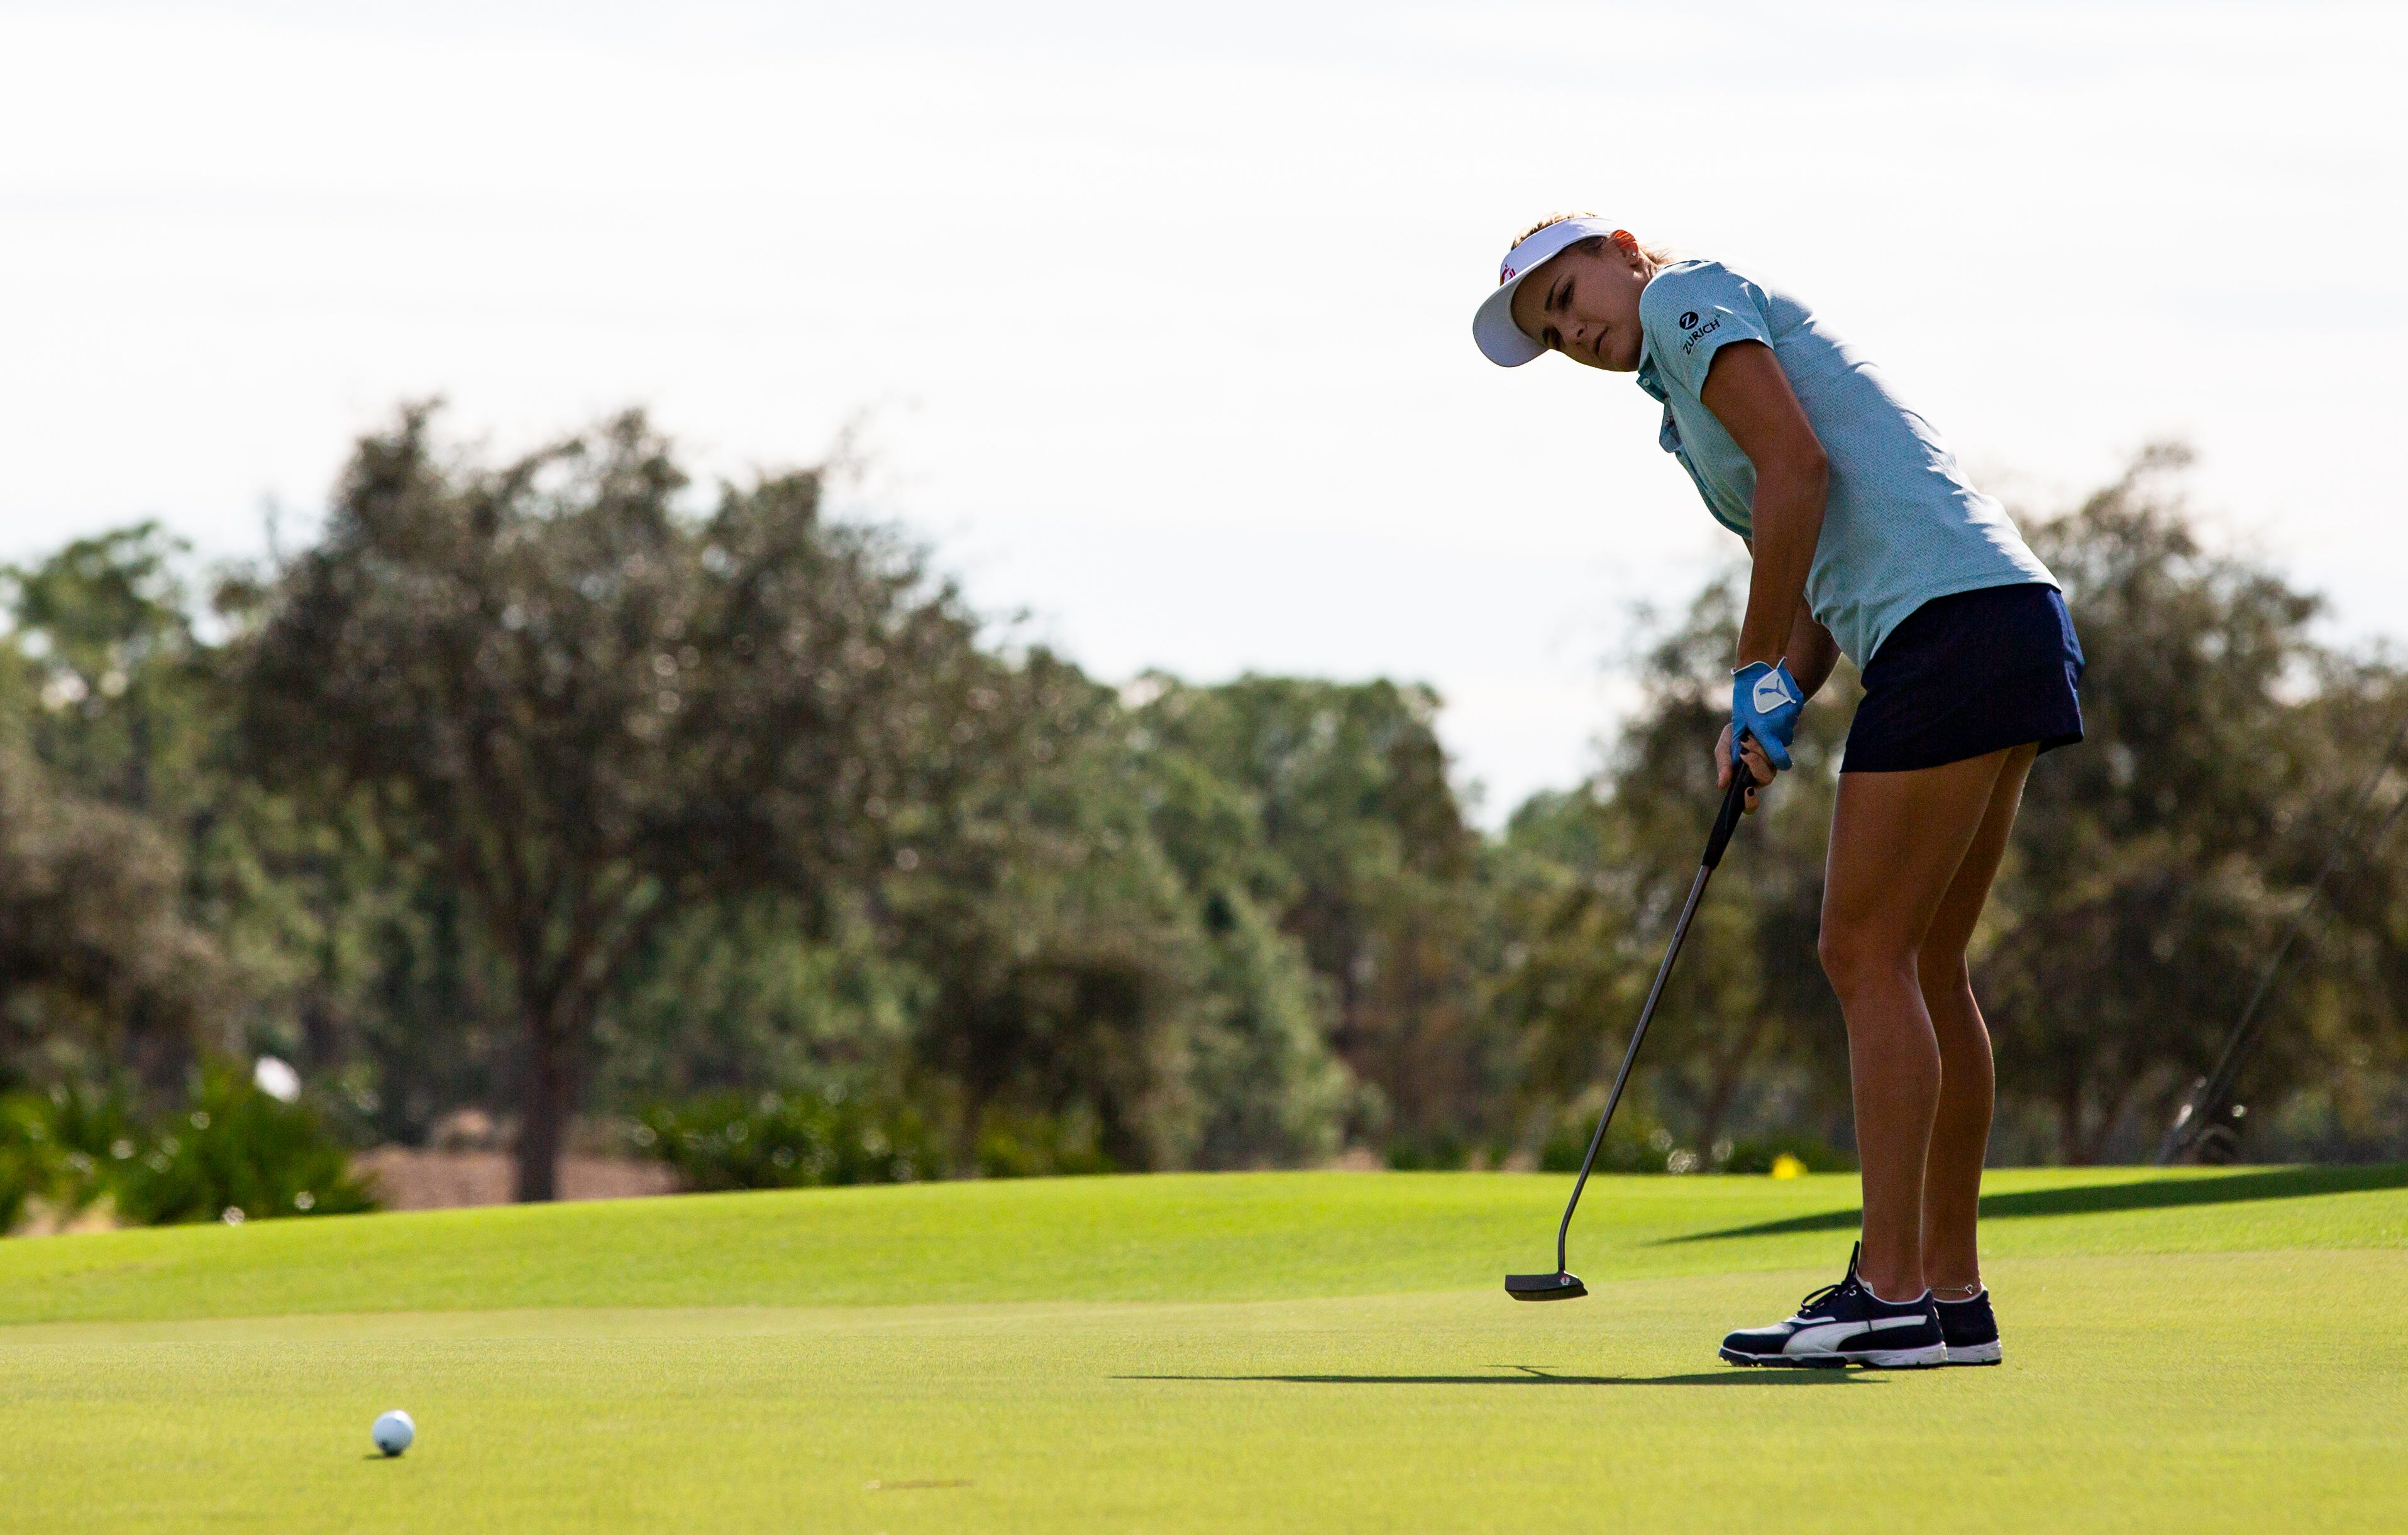 Lexi Thompson of Florida, putts the ball during the first Pro- Amateur round of the 30th annual QBE Shootout at Tiburón Golf Club on Wednesday, Dec. 5, 2018.